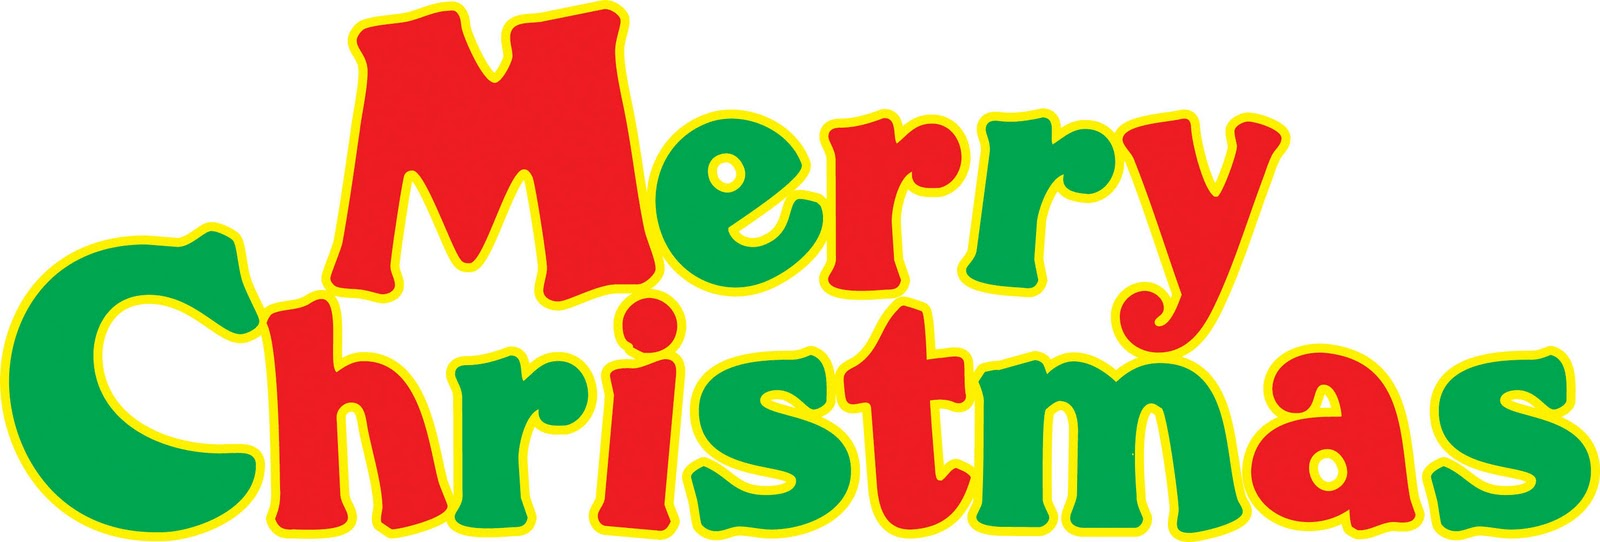 Christmas Clip Art Merry .-Christmas Clip Art Merry .-1